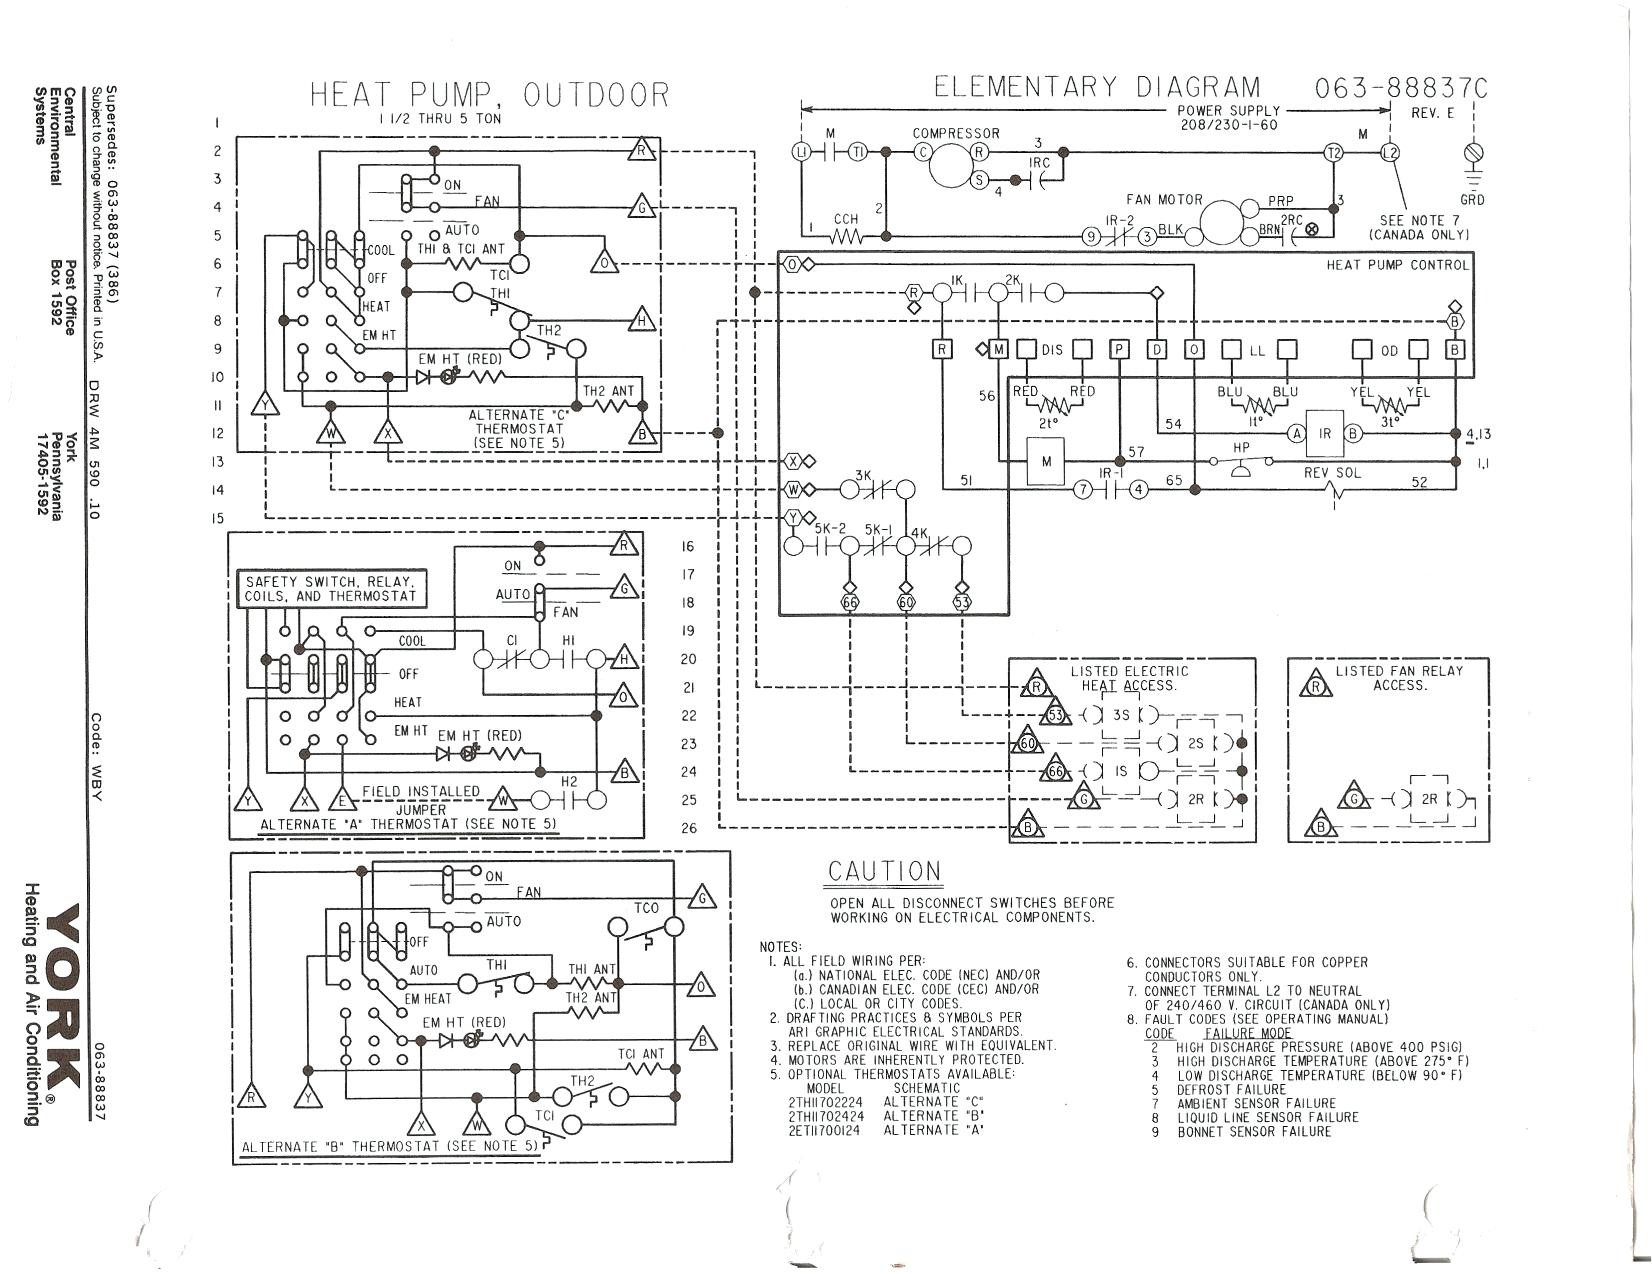 goodman heat pump wiring diagrams pool heat pump wiring diagram sample